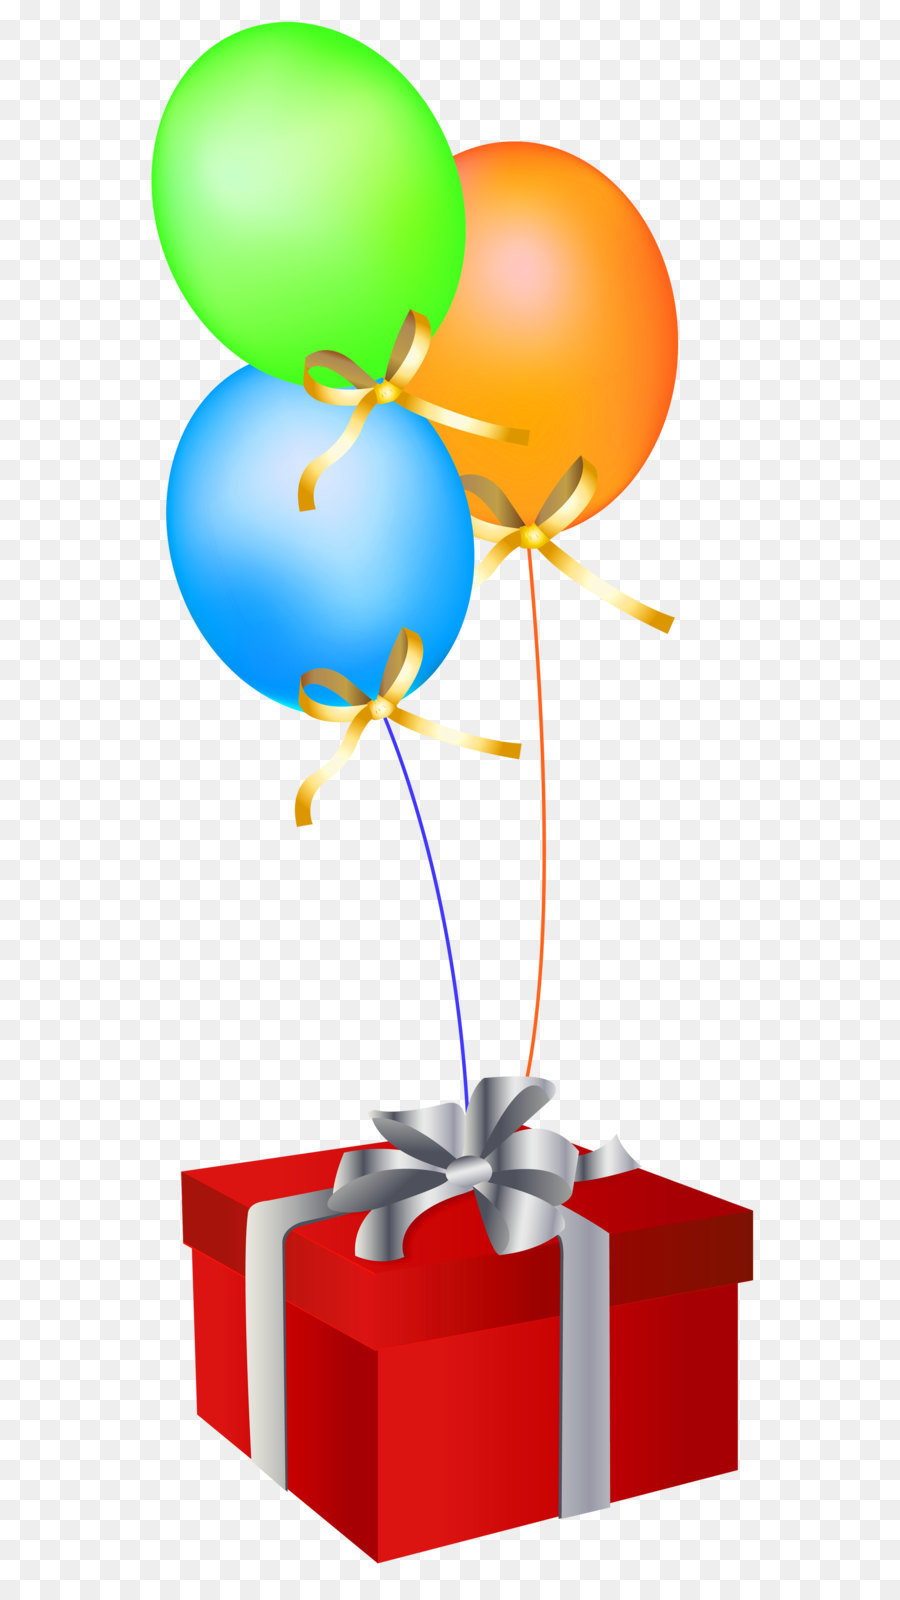 Balloon Gift Birthday Greeting card Clip art - Red Gift Box with Balloons png download - 1400*3406 - Free Transparent Balloon png Download.